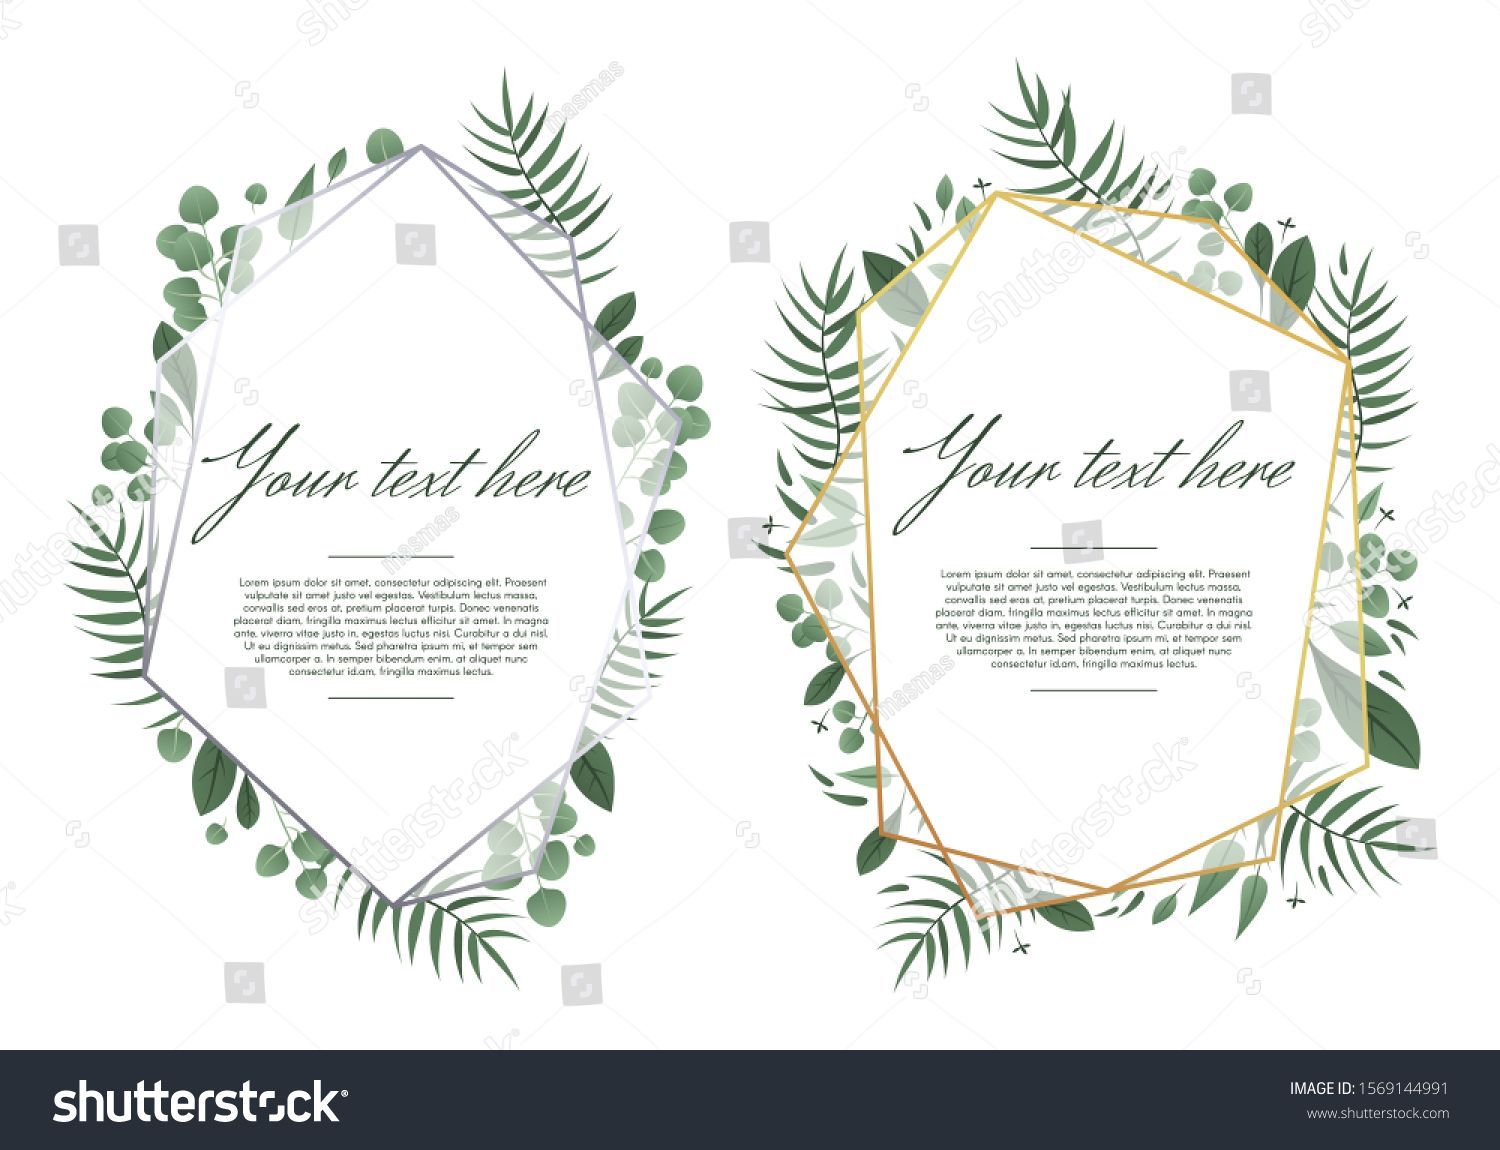 Wedding Greeting Card Floral Geometric Frame Golden Romantic Design Card Green Border Decoration Wedding Wedding Greeting Cards Card Design Romantic Design